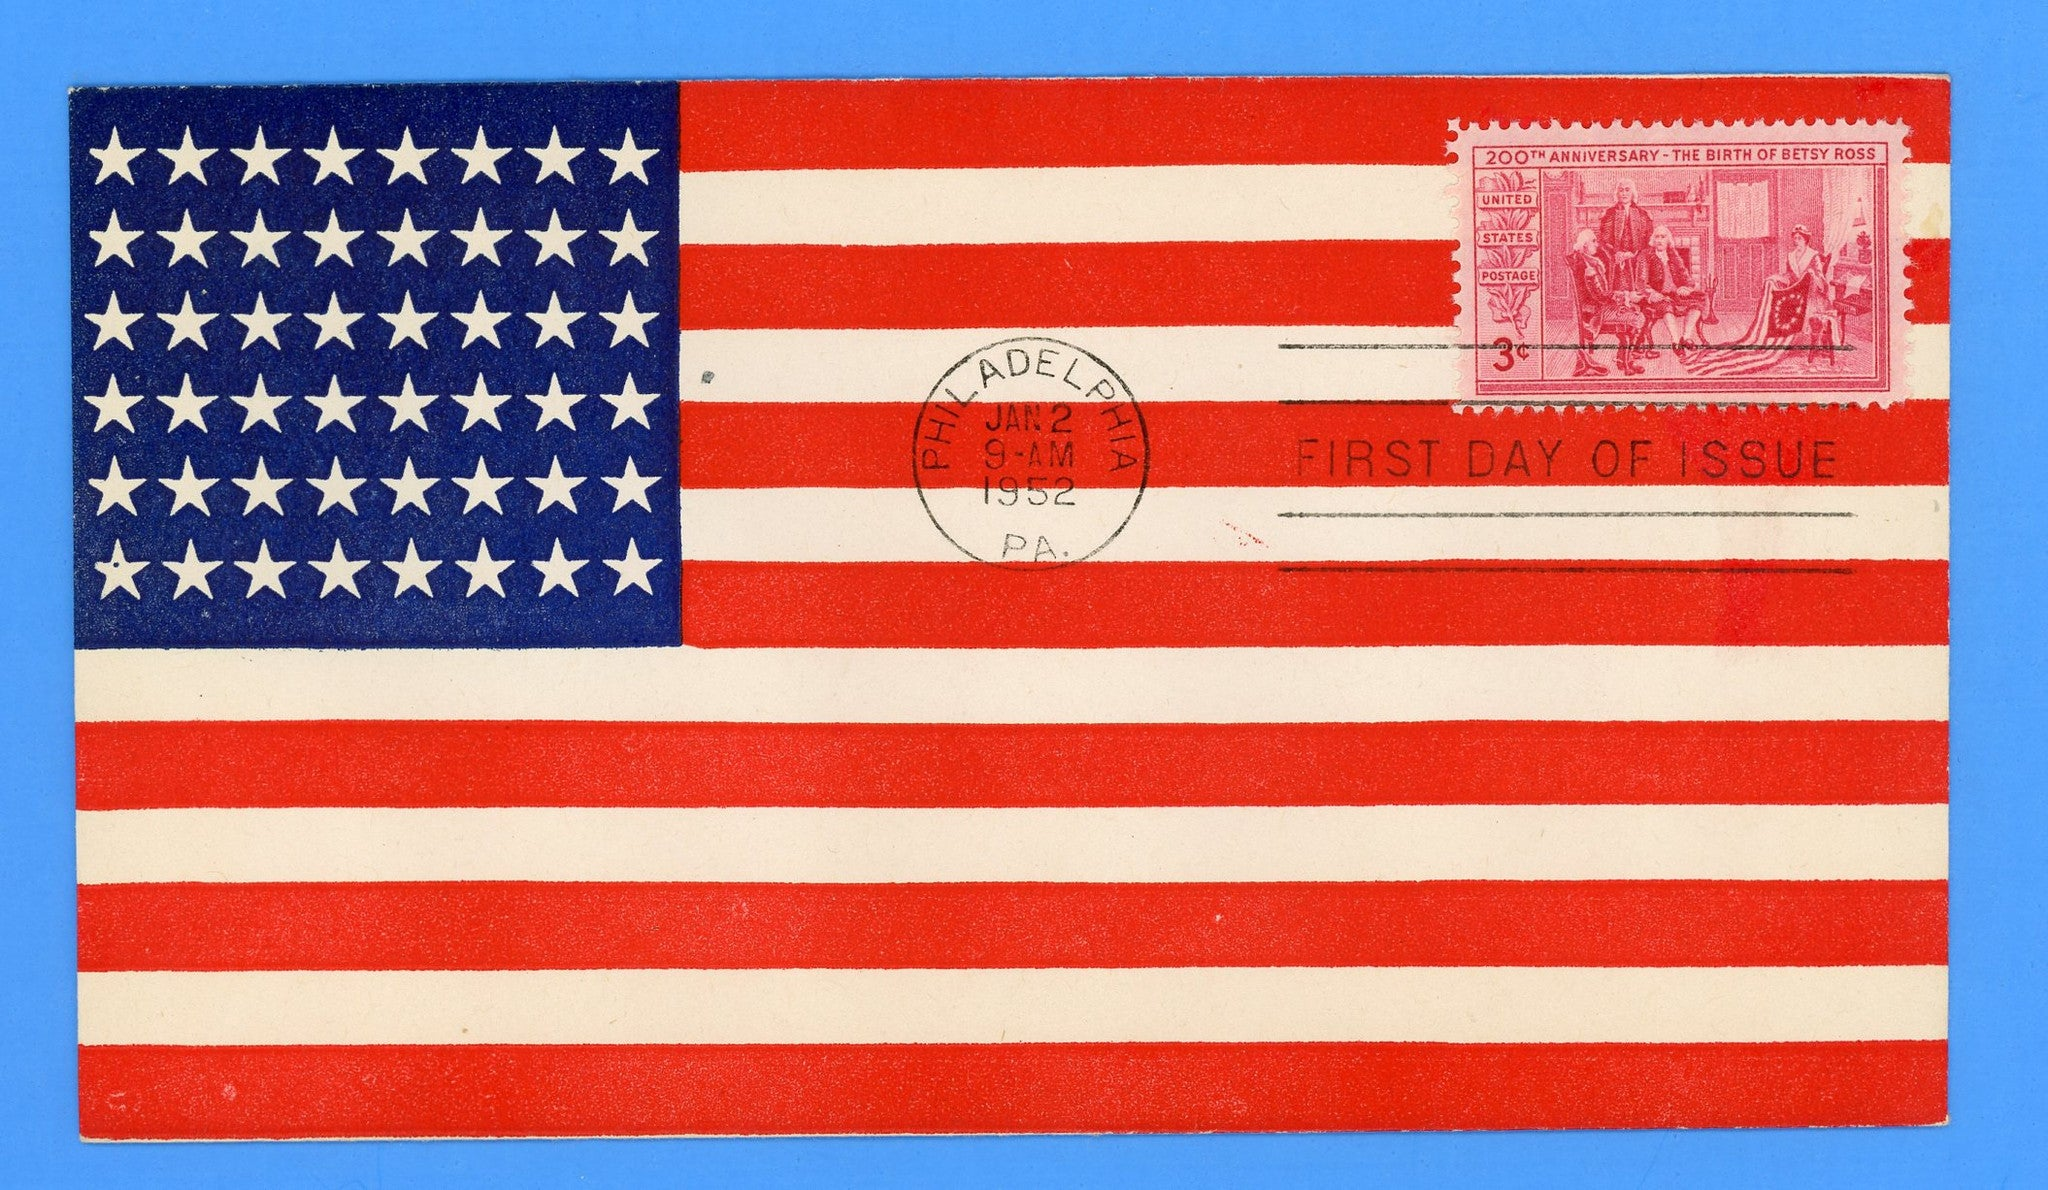 Scott 1004 3c Betsy Ross Anniversary First Day Cover